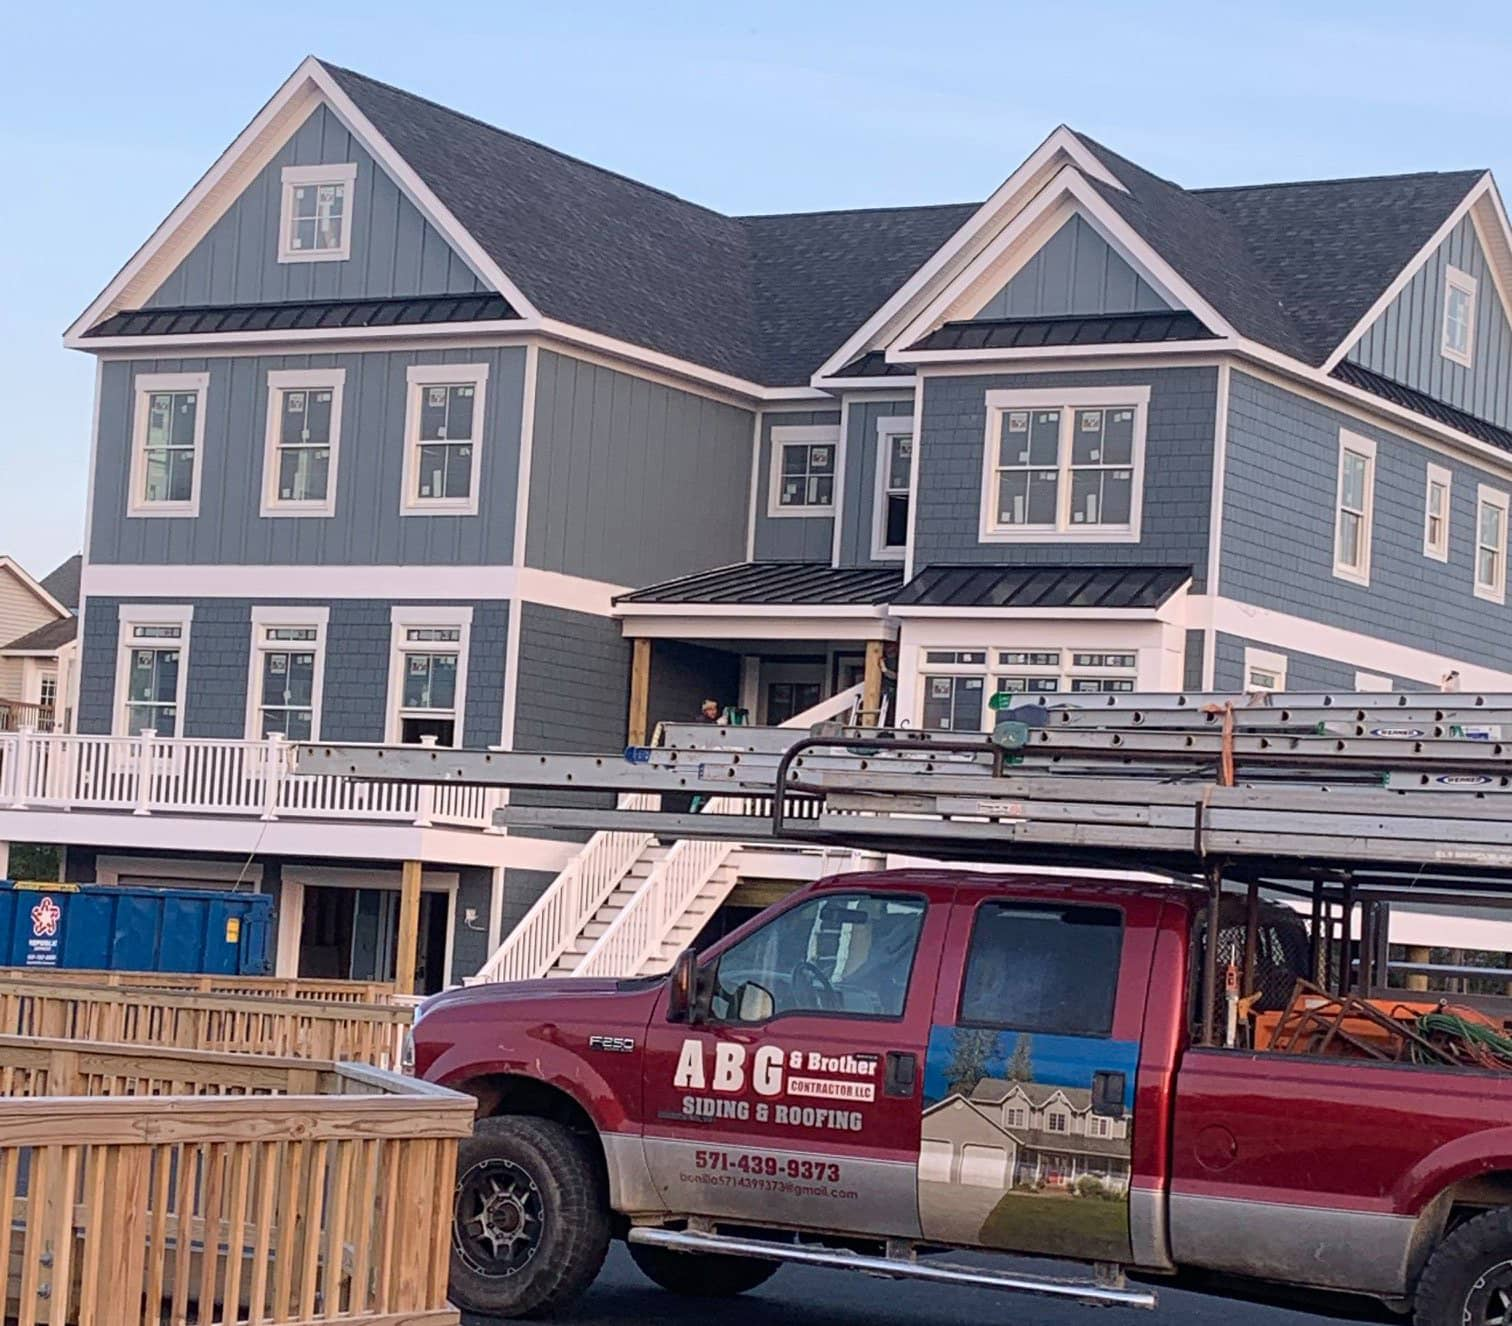 abg truck and big blue house